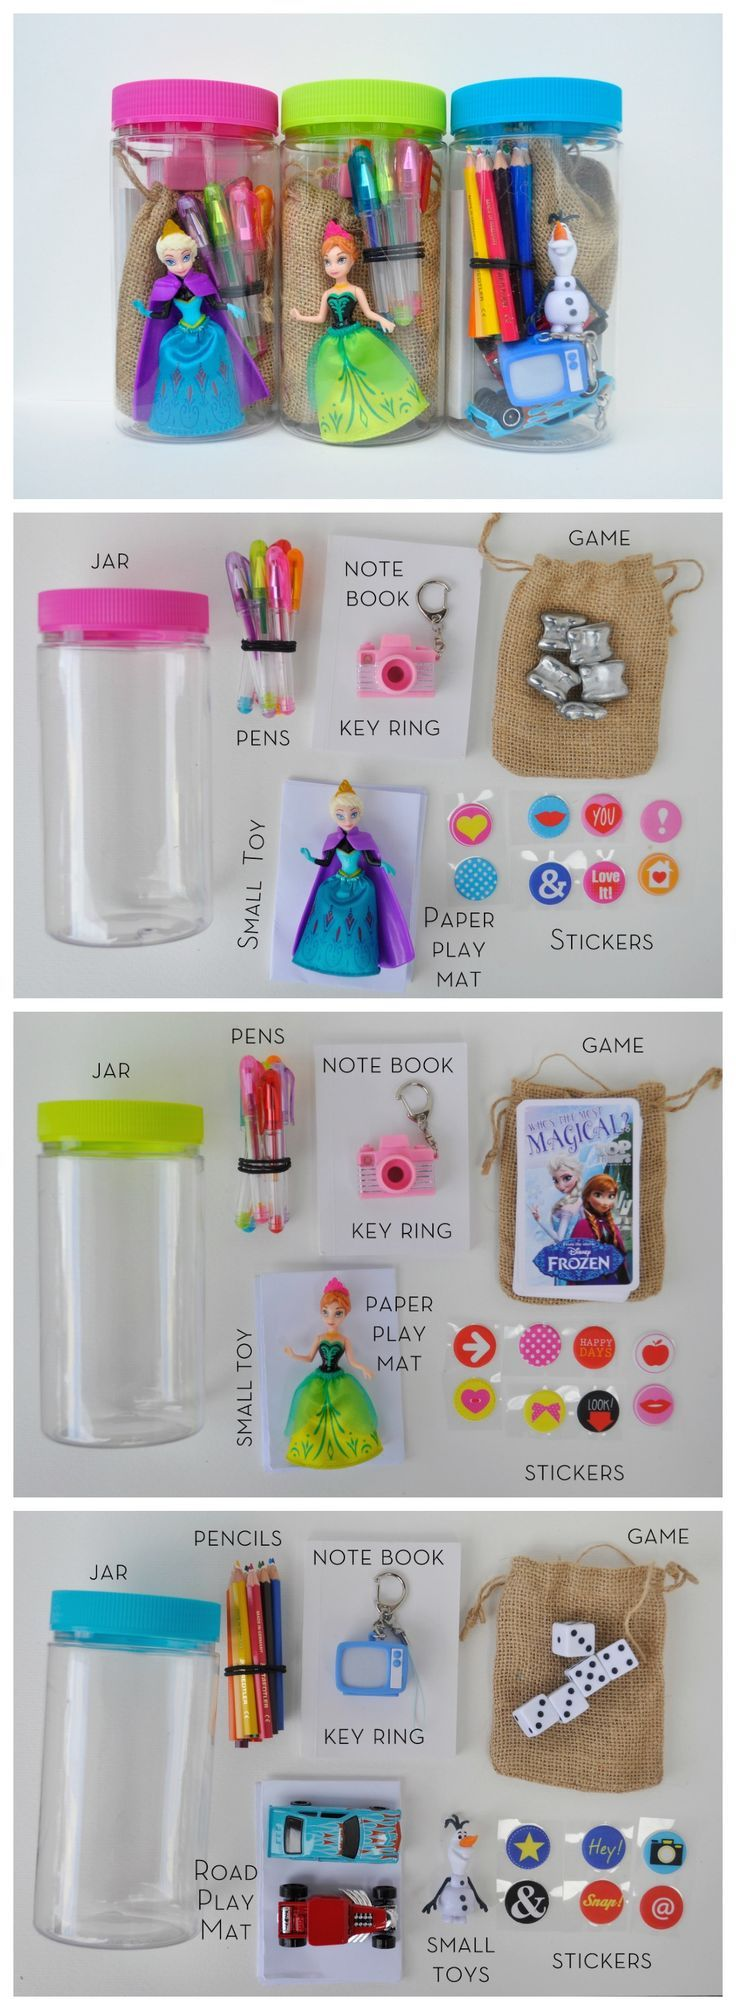 These are great birthday gifts or birthday party favors for a princess themed birthday party!